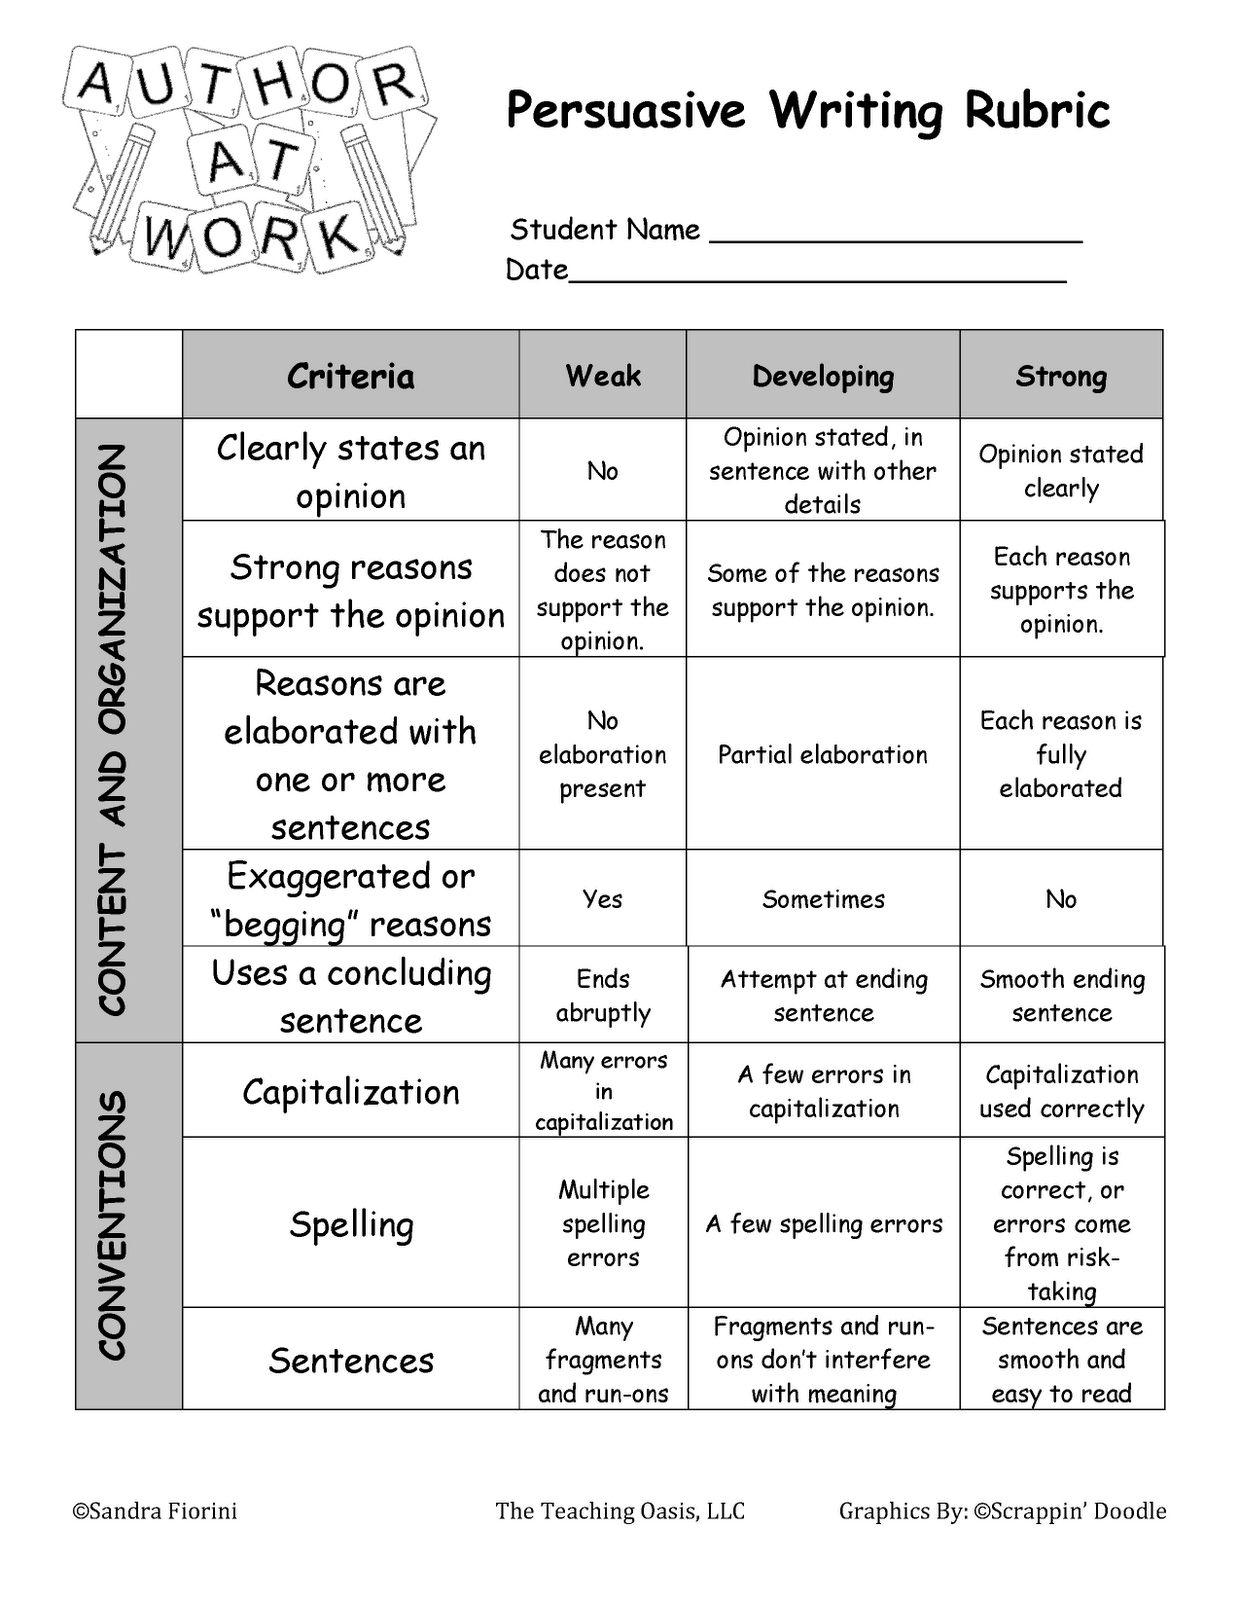 A Bunch Of Awesome Teachers Bloggers Have Joined Together To Share Their Favorite Personal Item For Persuasive Writing Rubric Persuasive Writing Writing Rubric [ 1600 x 1240 Pixel ]